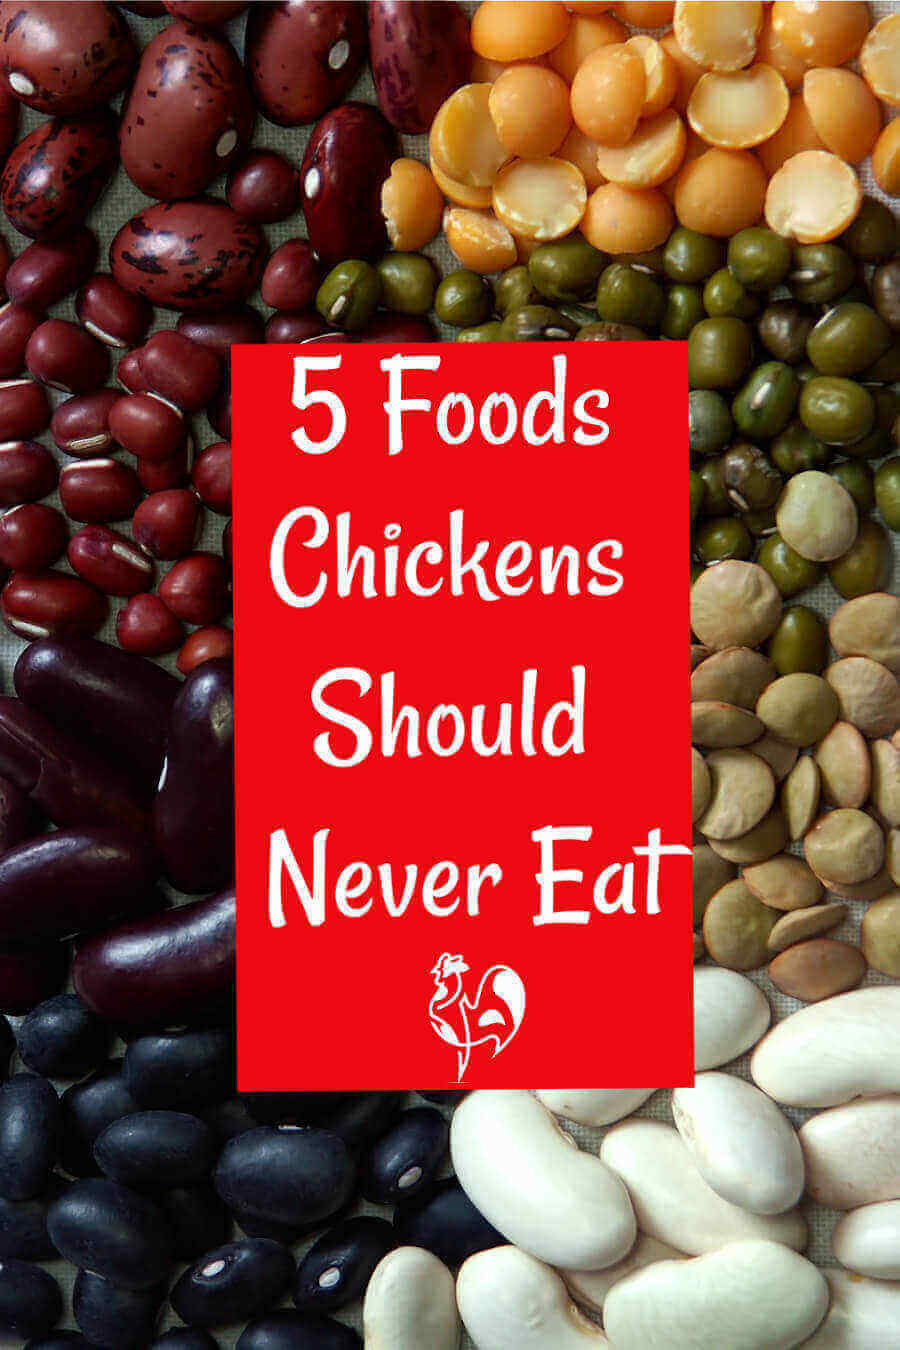 What Should Chickens Absolutely Not Eat